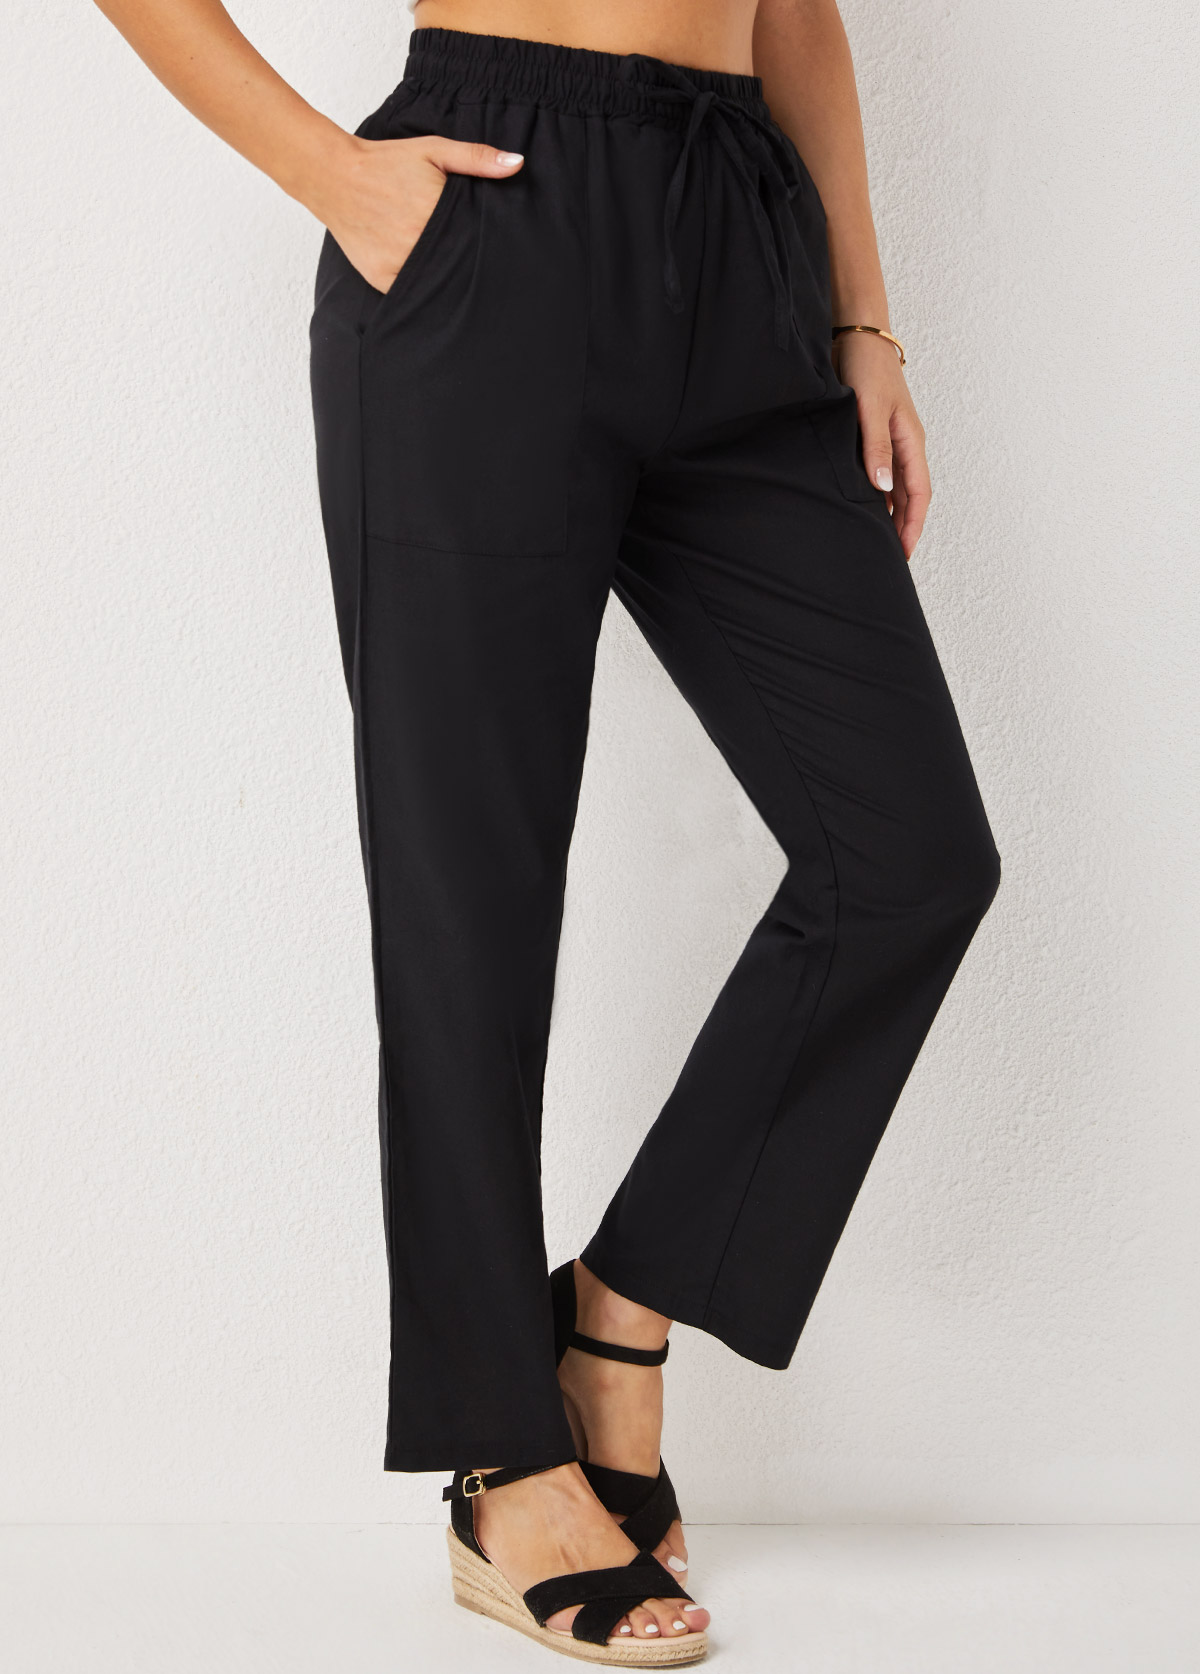 Pocket Detail High Waisted Solid Pants